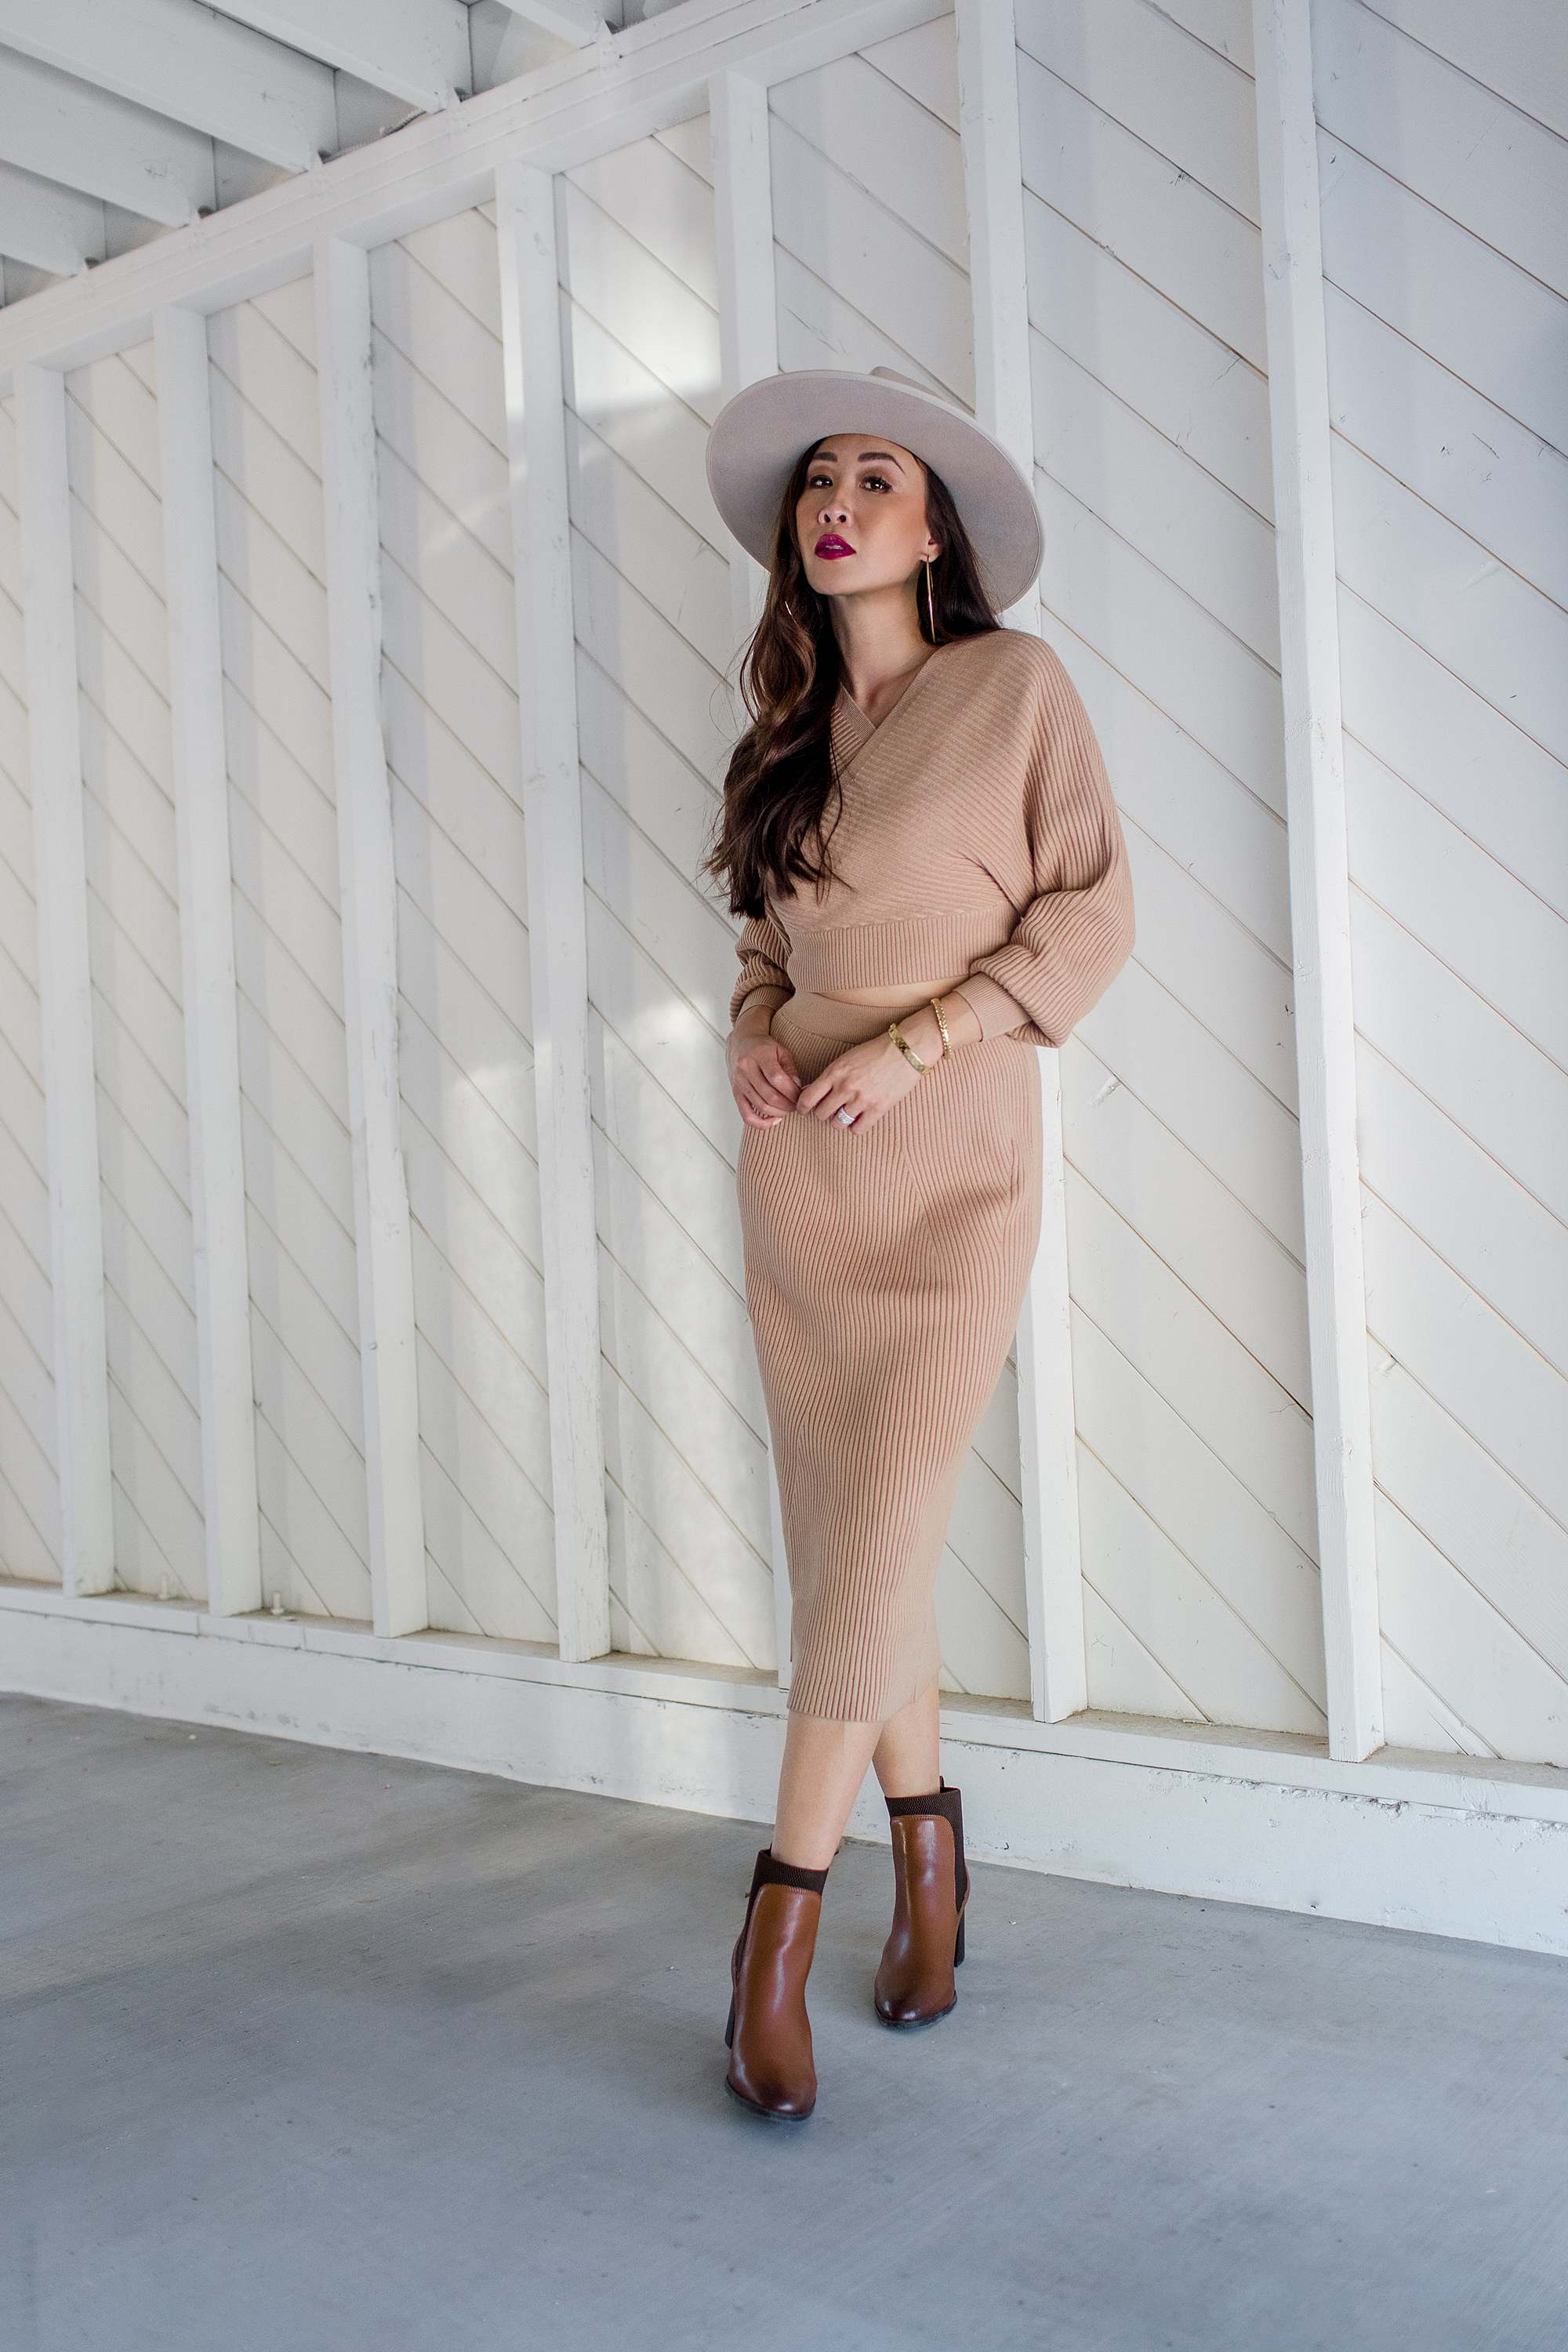 ribbed sweater and dress set for fall and ankle booties look